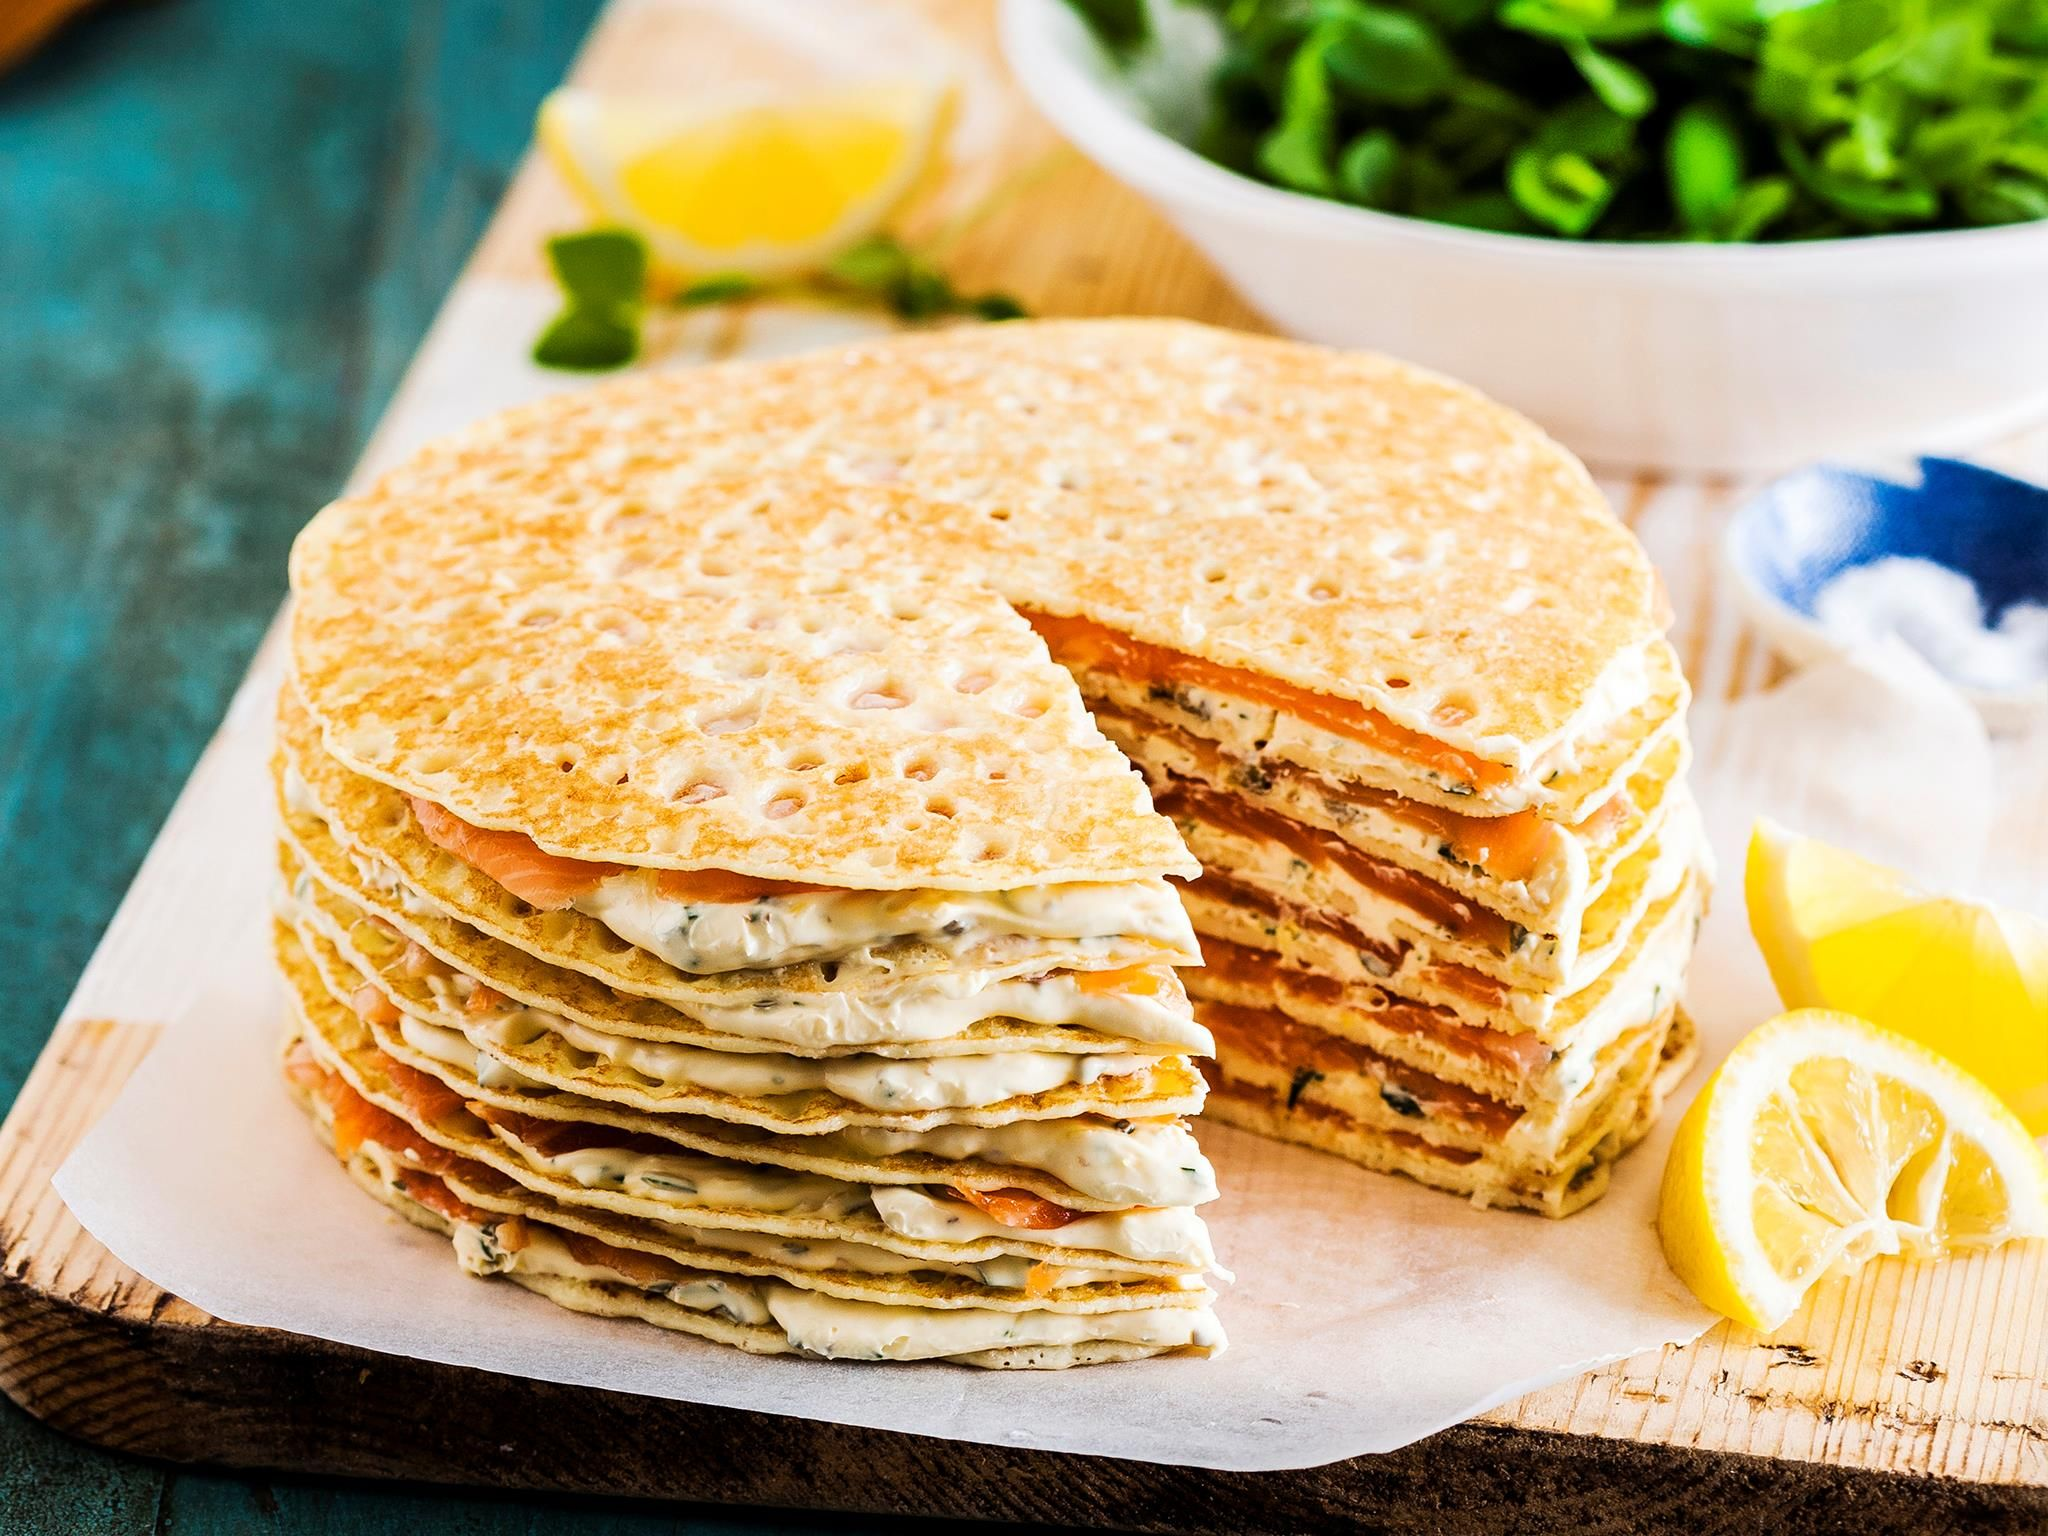 Smoked Salmon And Mascarpone Crepe Cake Recipe Crepe Cake Smoked Salmon Savory Crepes